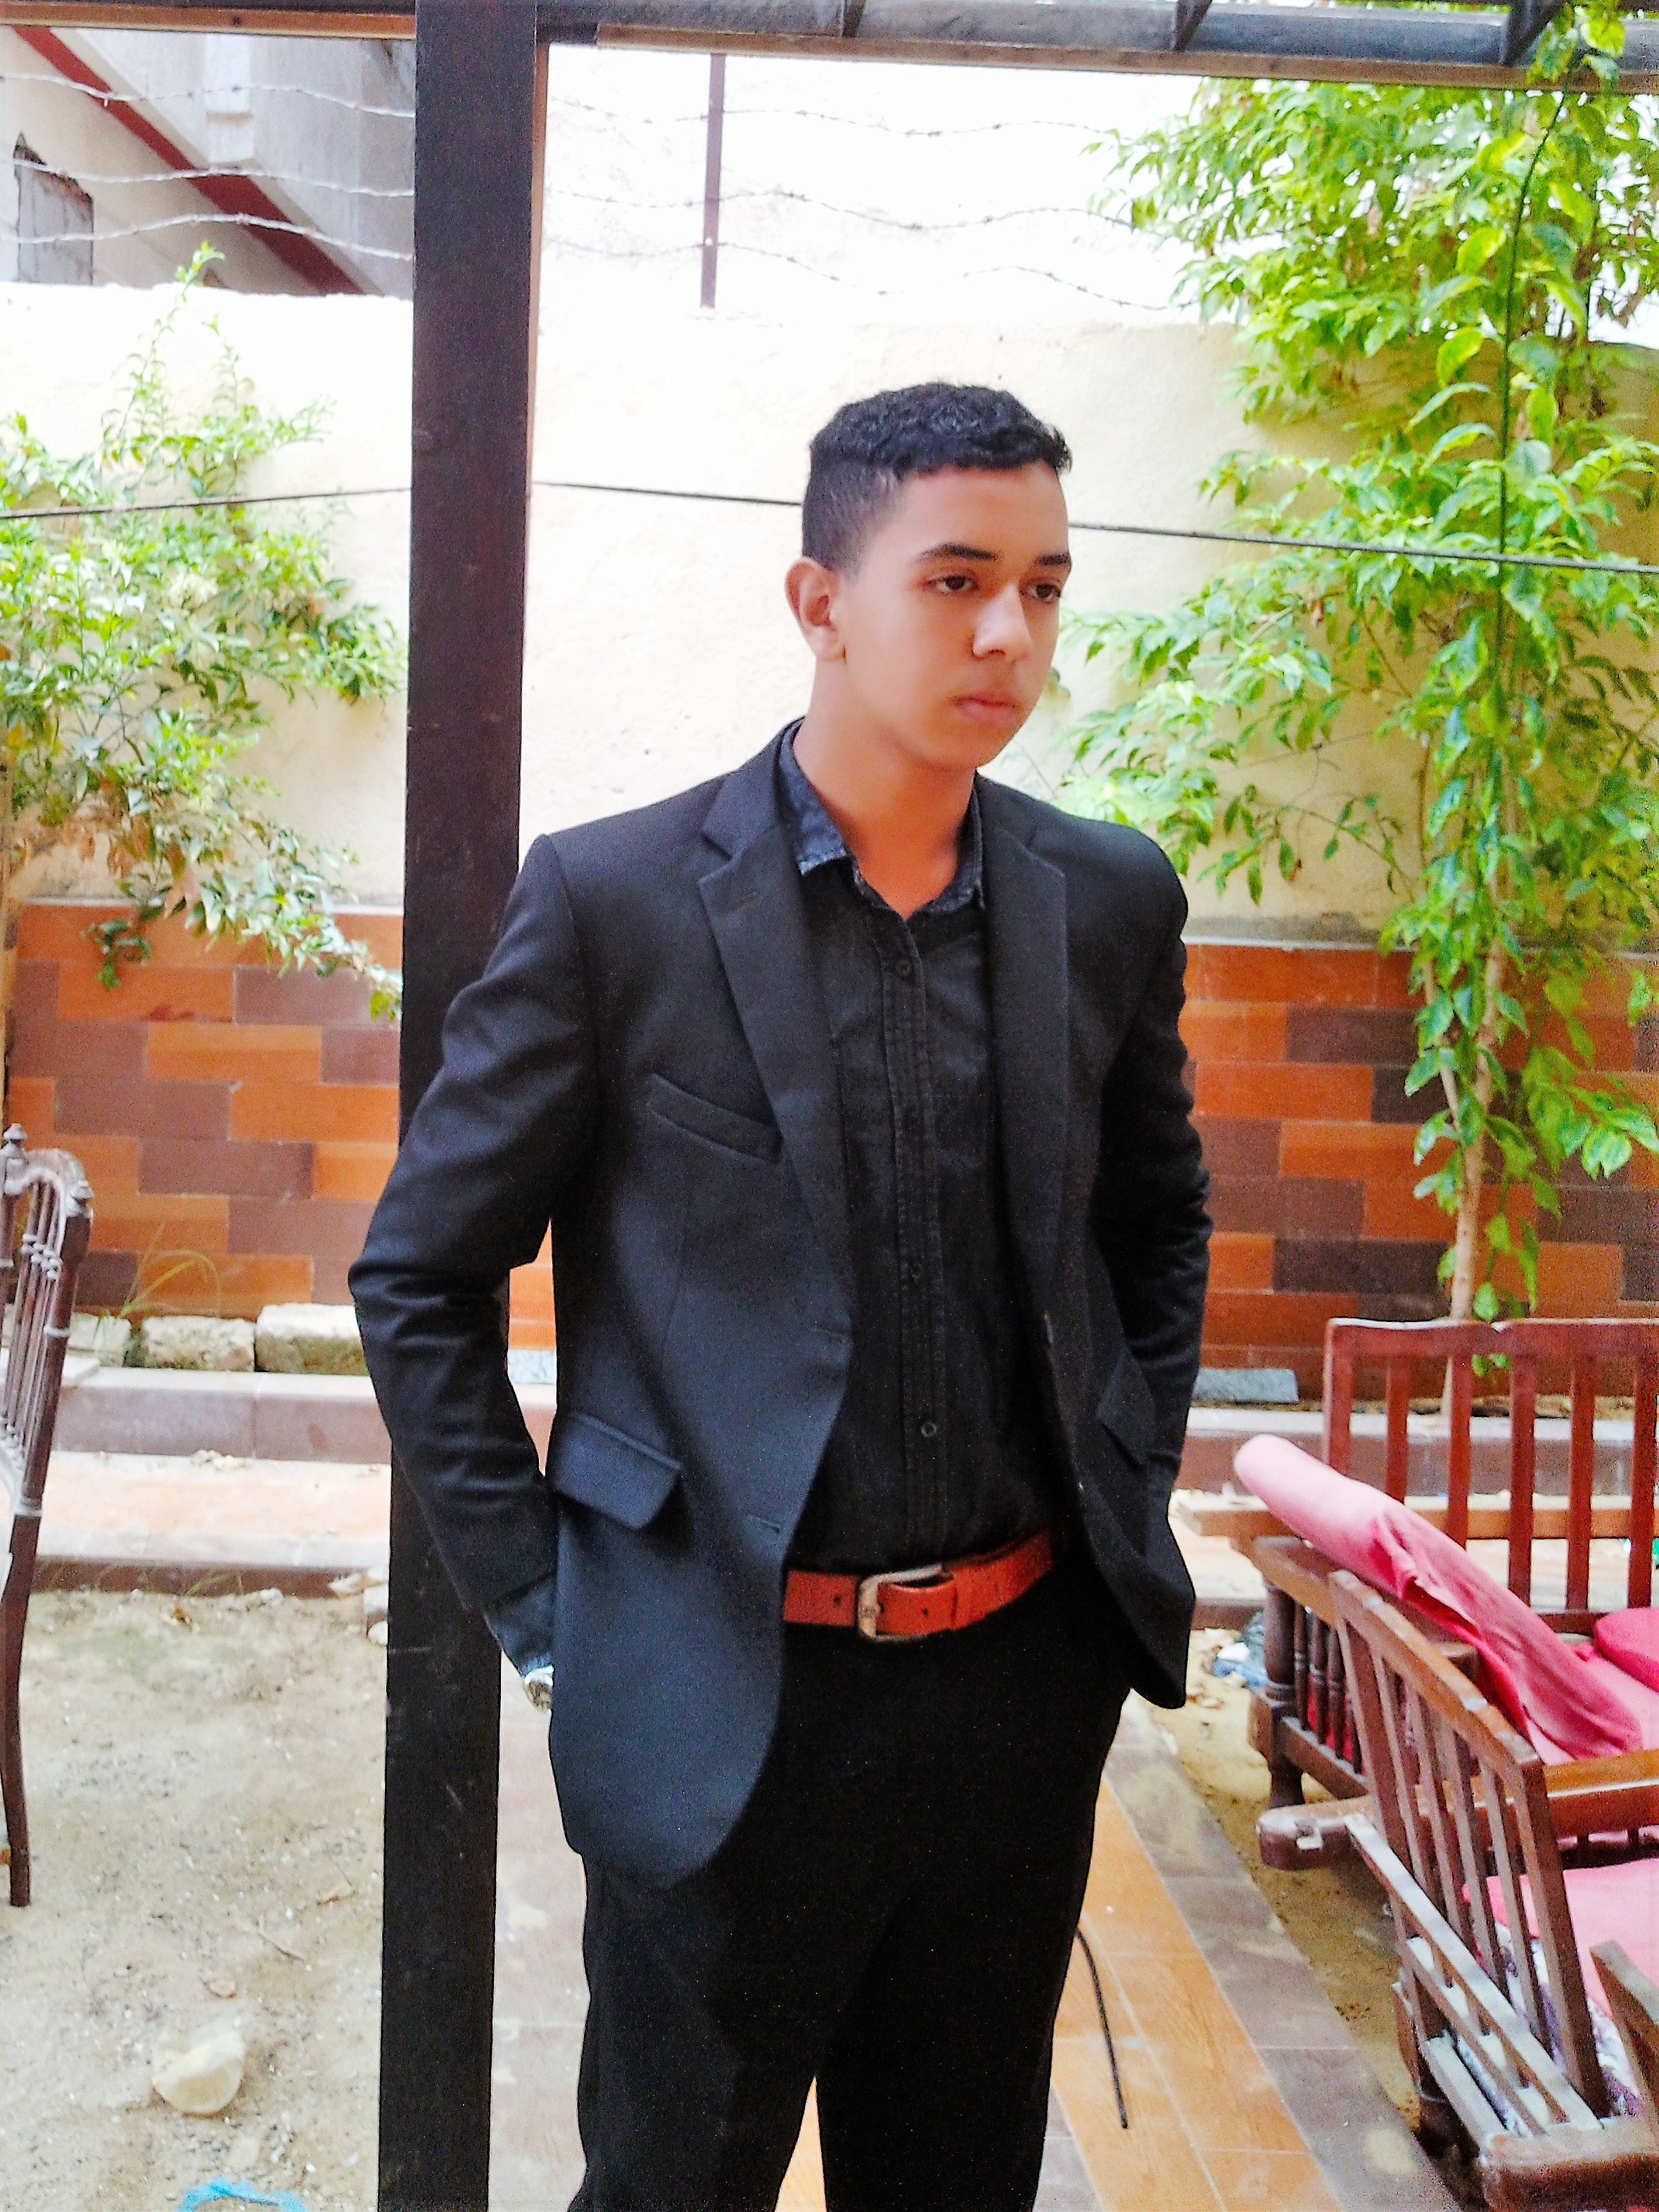 mohamed1ayyad Profile Picture